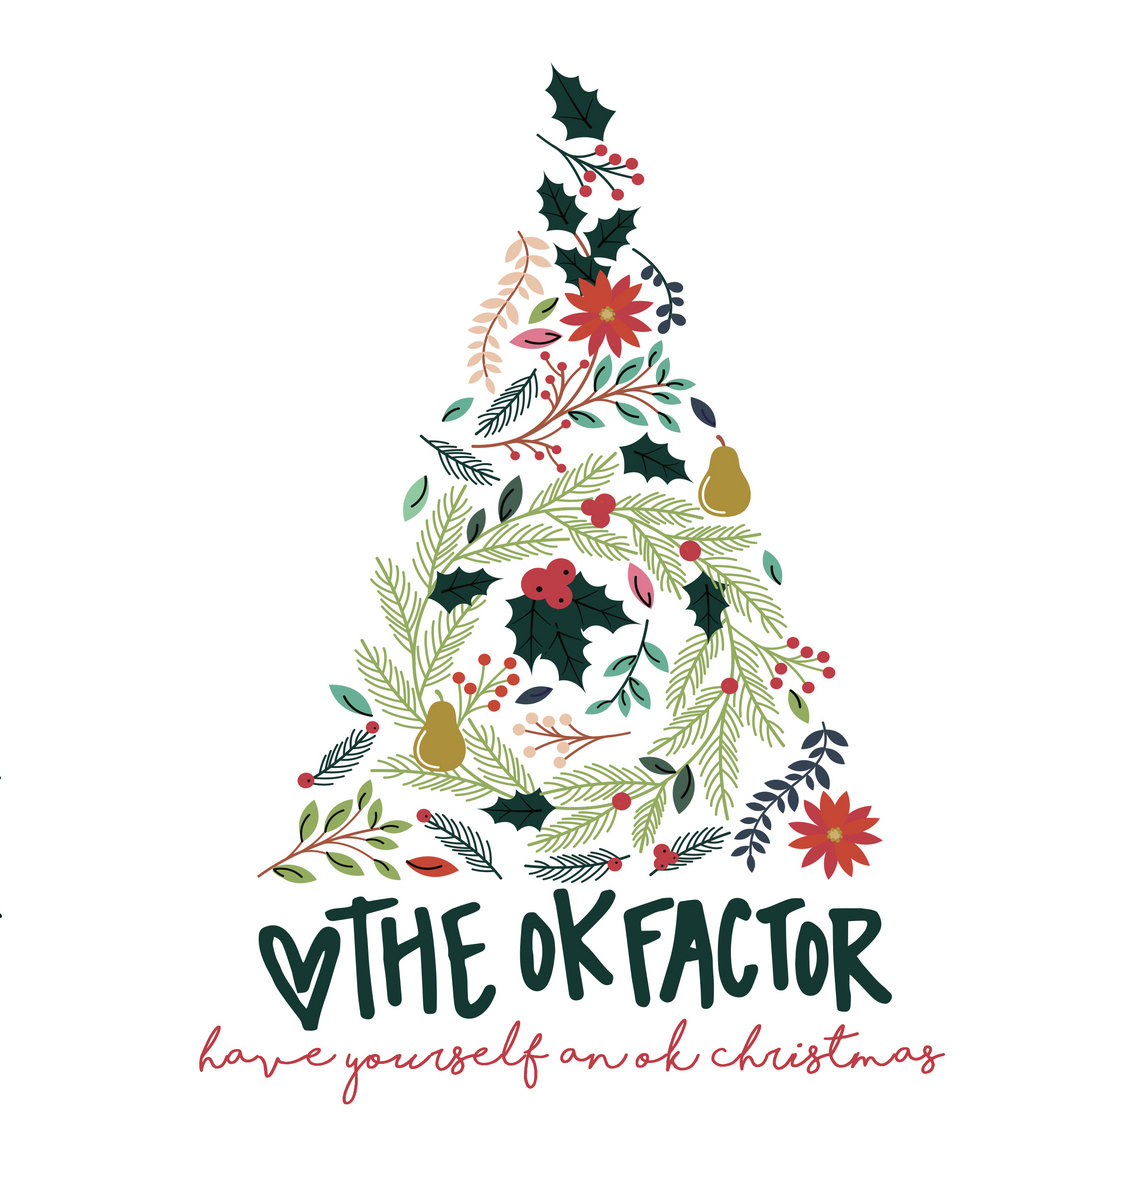 from have yourself an ok christmas by the ok factor - Merry Little Christmas